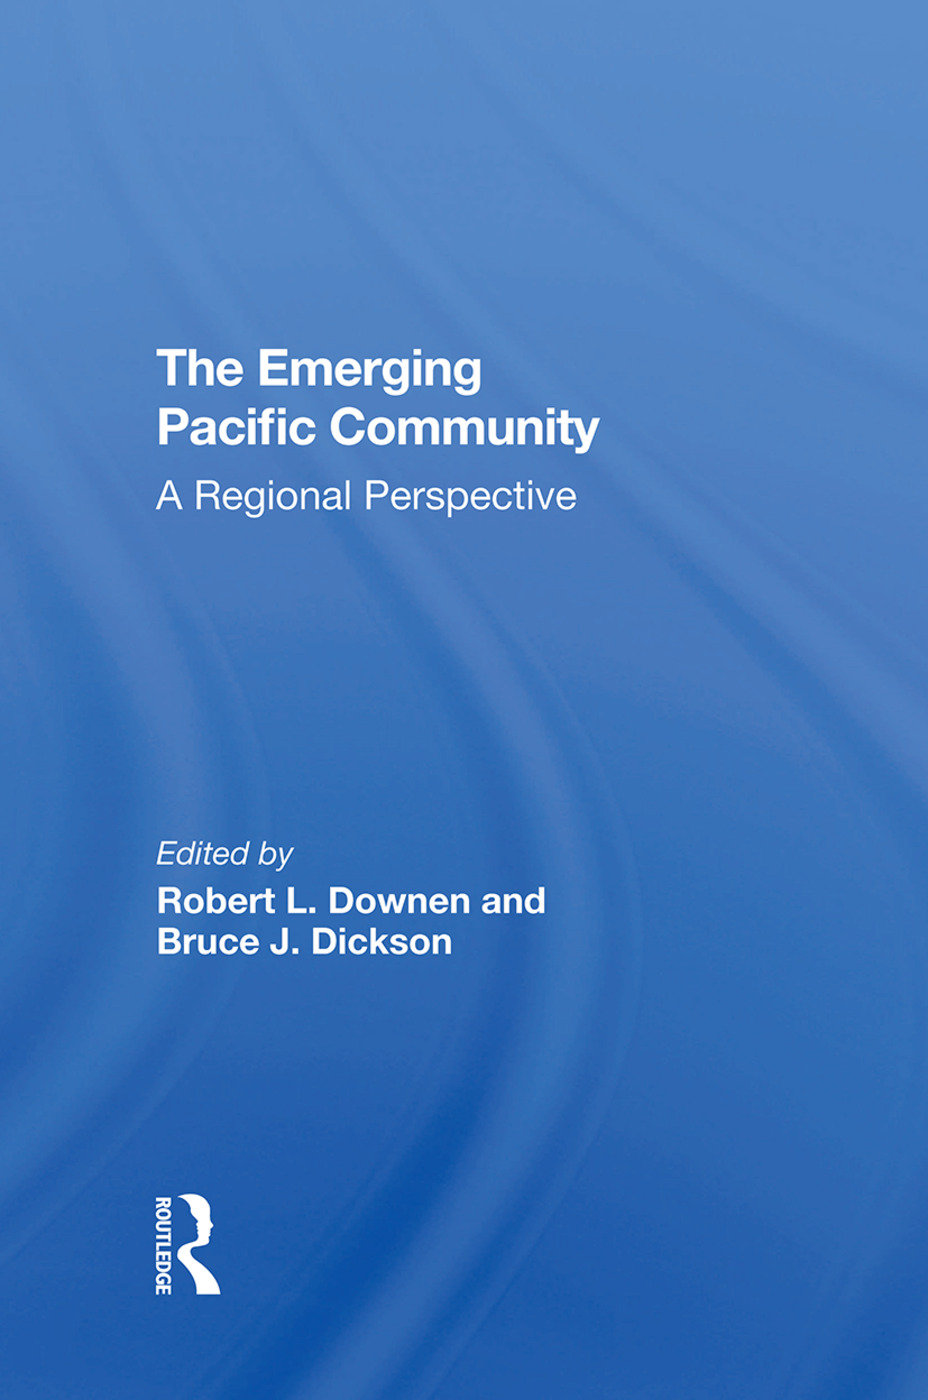 The Emerging Pacific Community